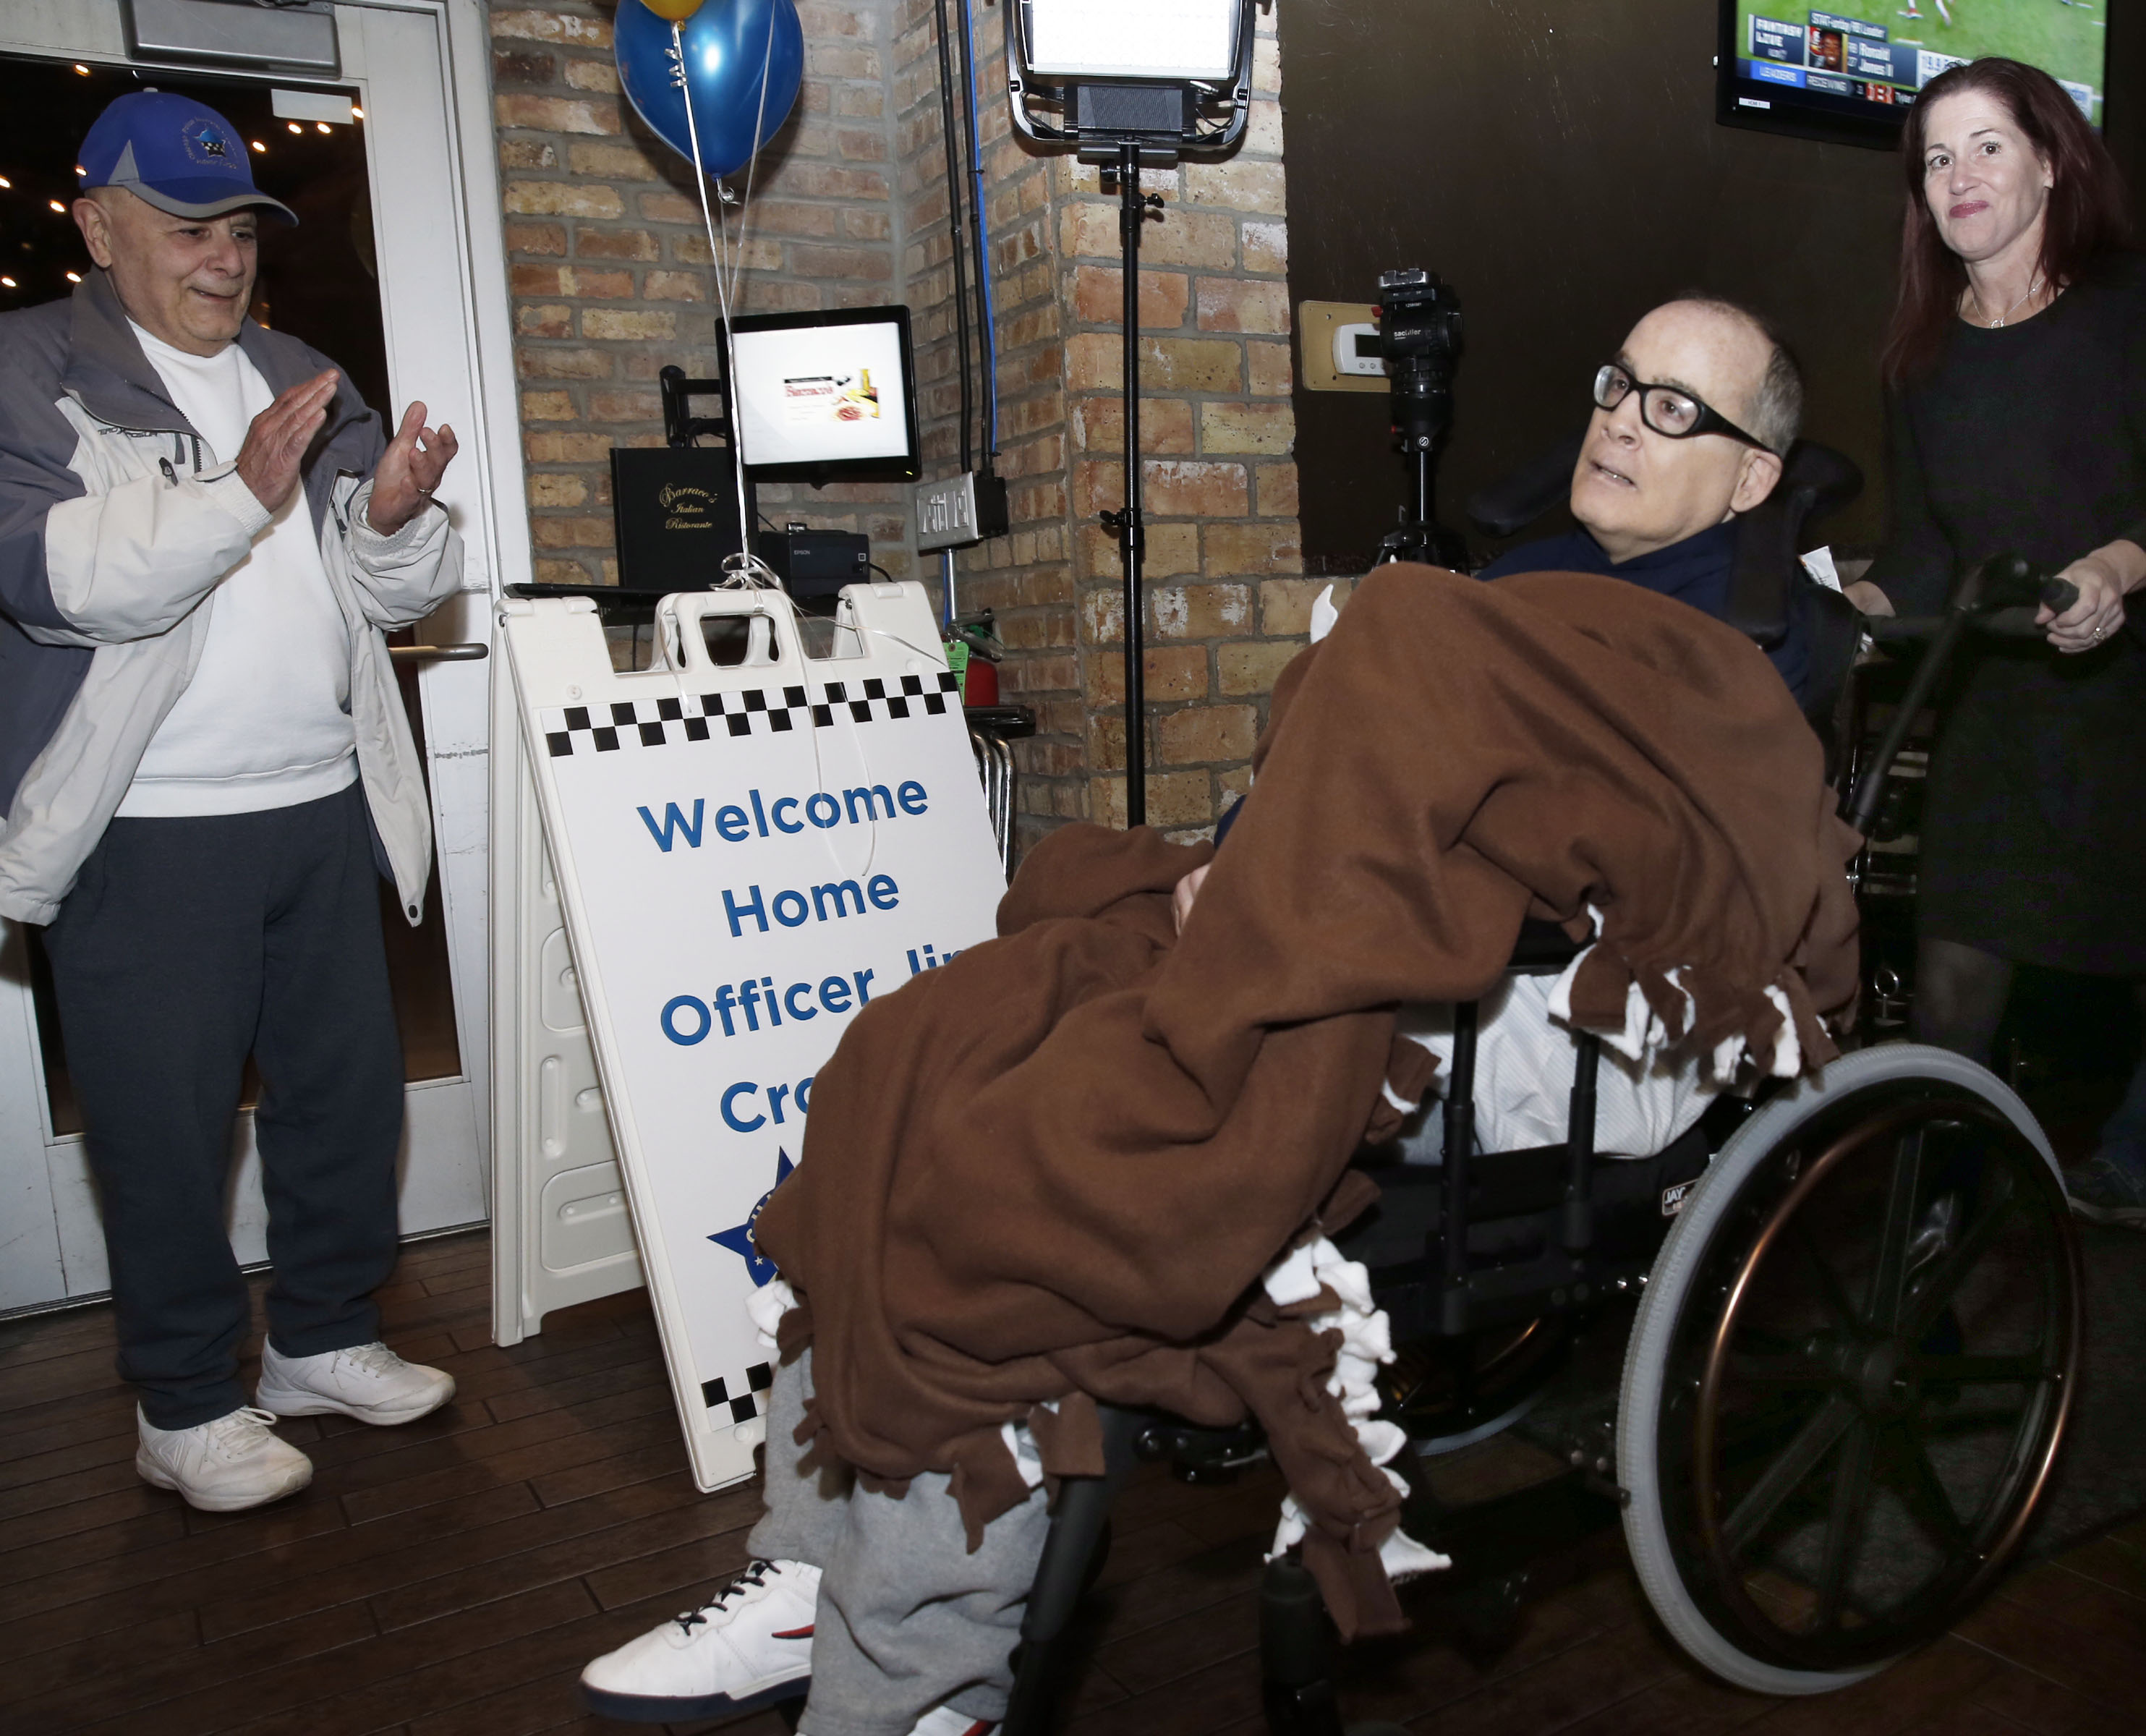 Pushed by his sister, Beth Carter, former CPD officer Jim Crowley is welcomed home for Christmas in Chicago, Monday, December 23, 2019.